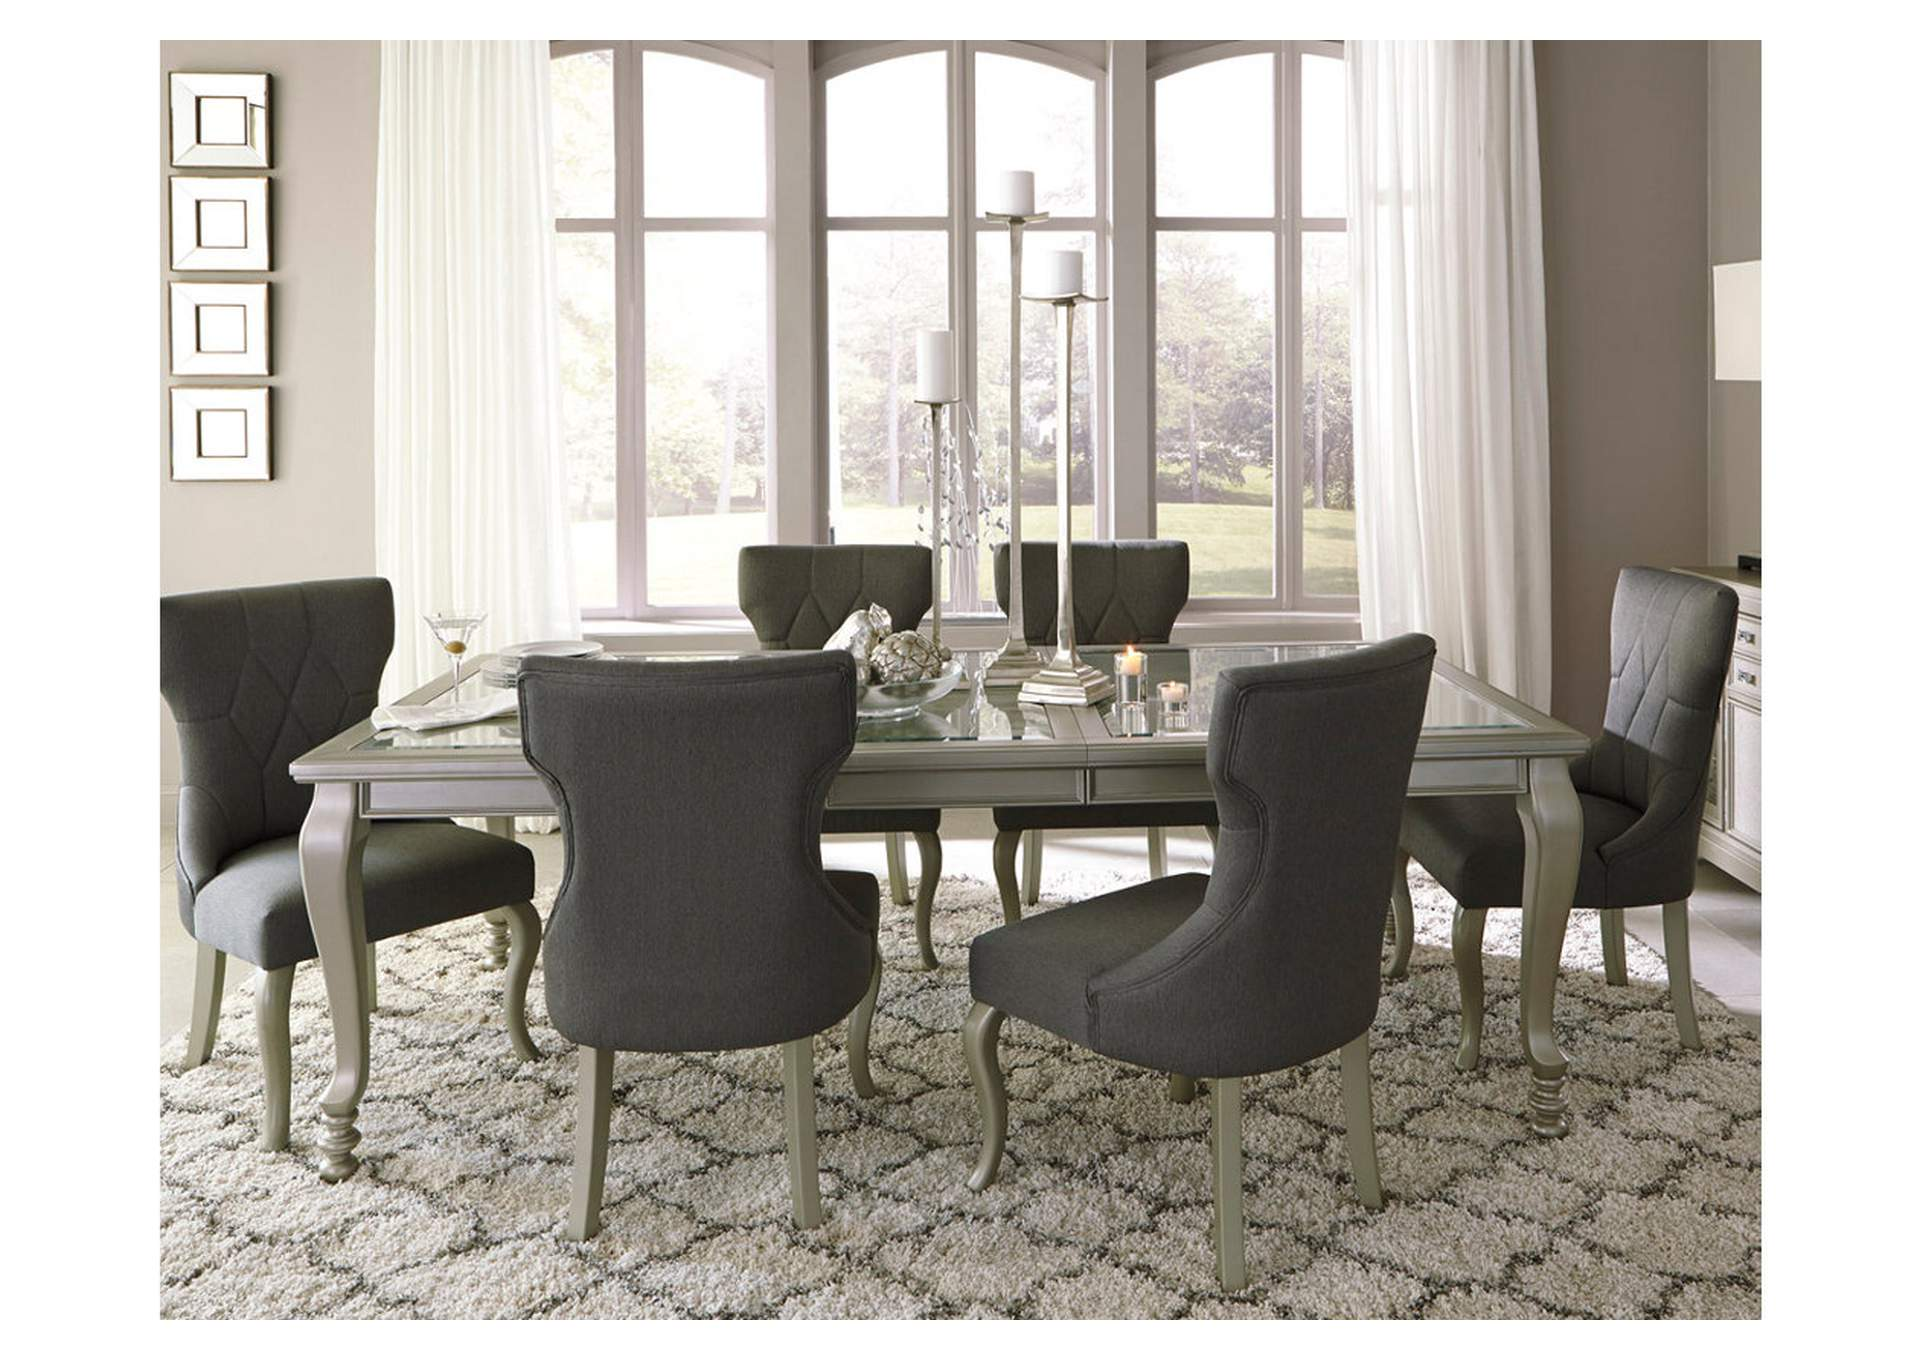 Coralayne Silver Finish Rectangular Dining Room Extension Table,Signature Design By Ashley